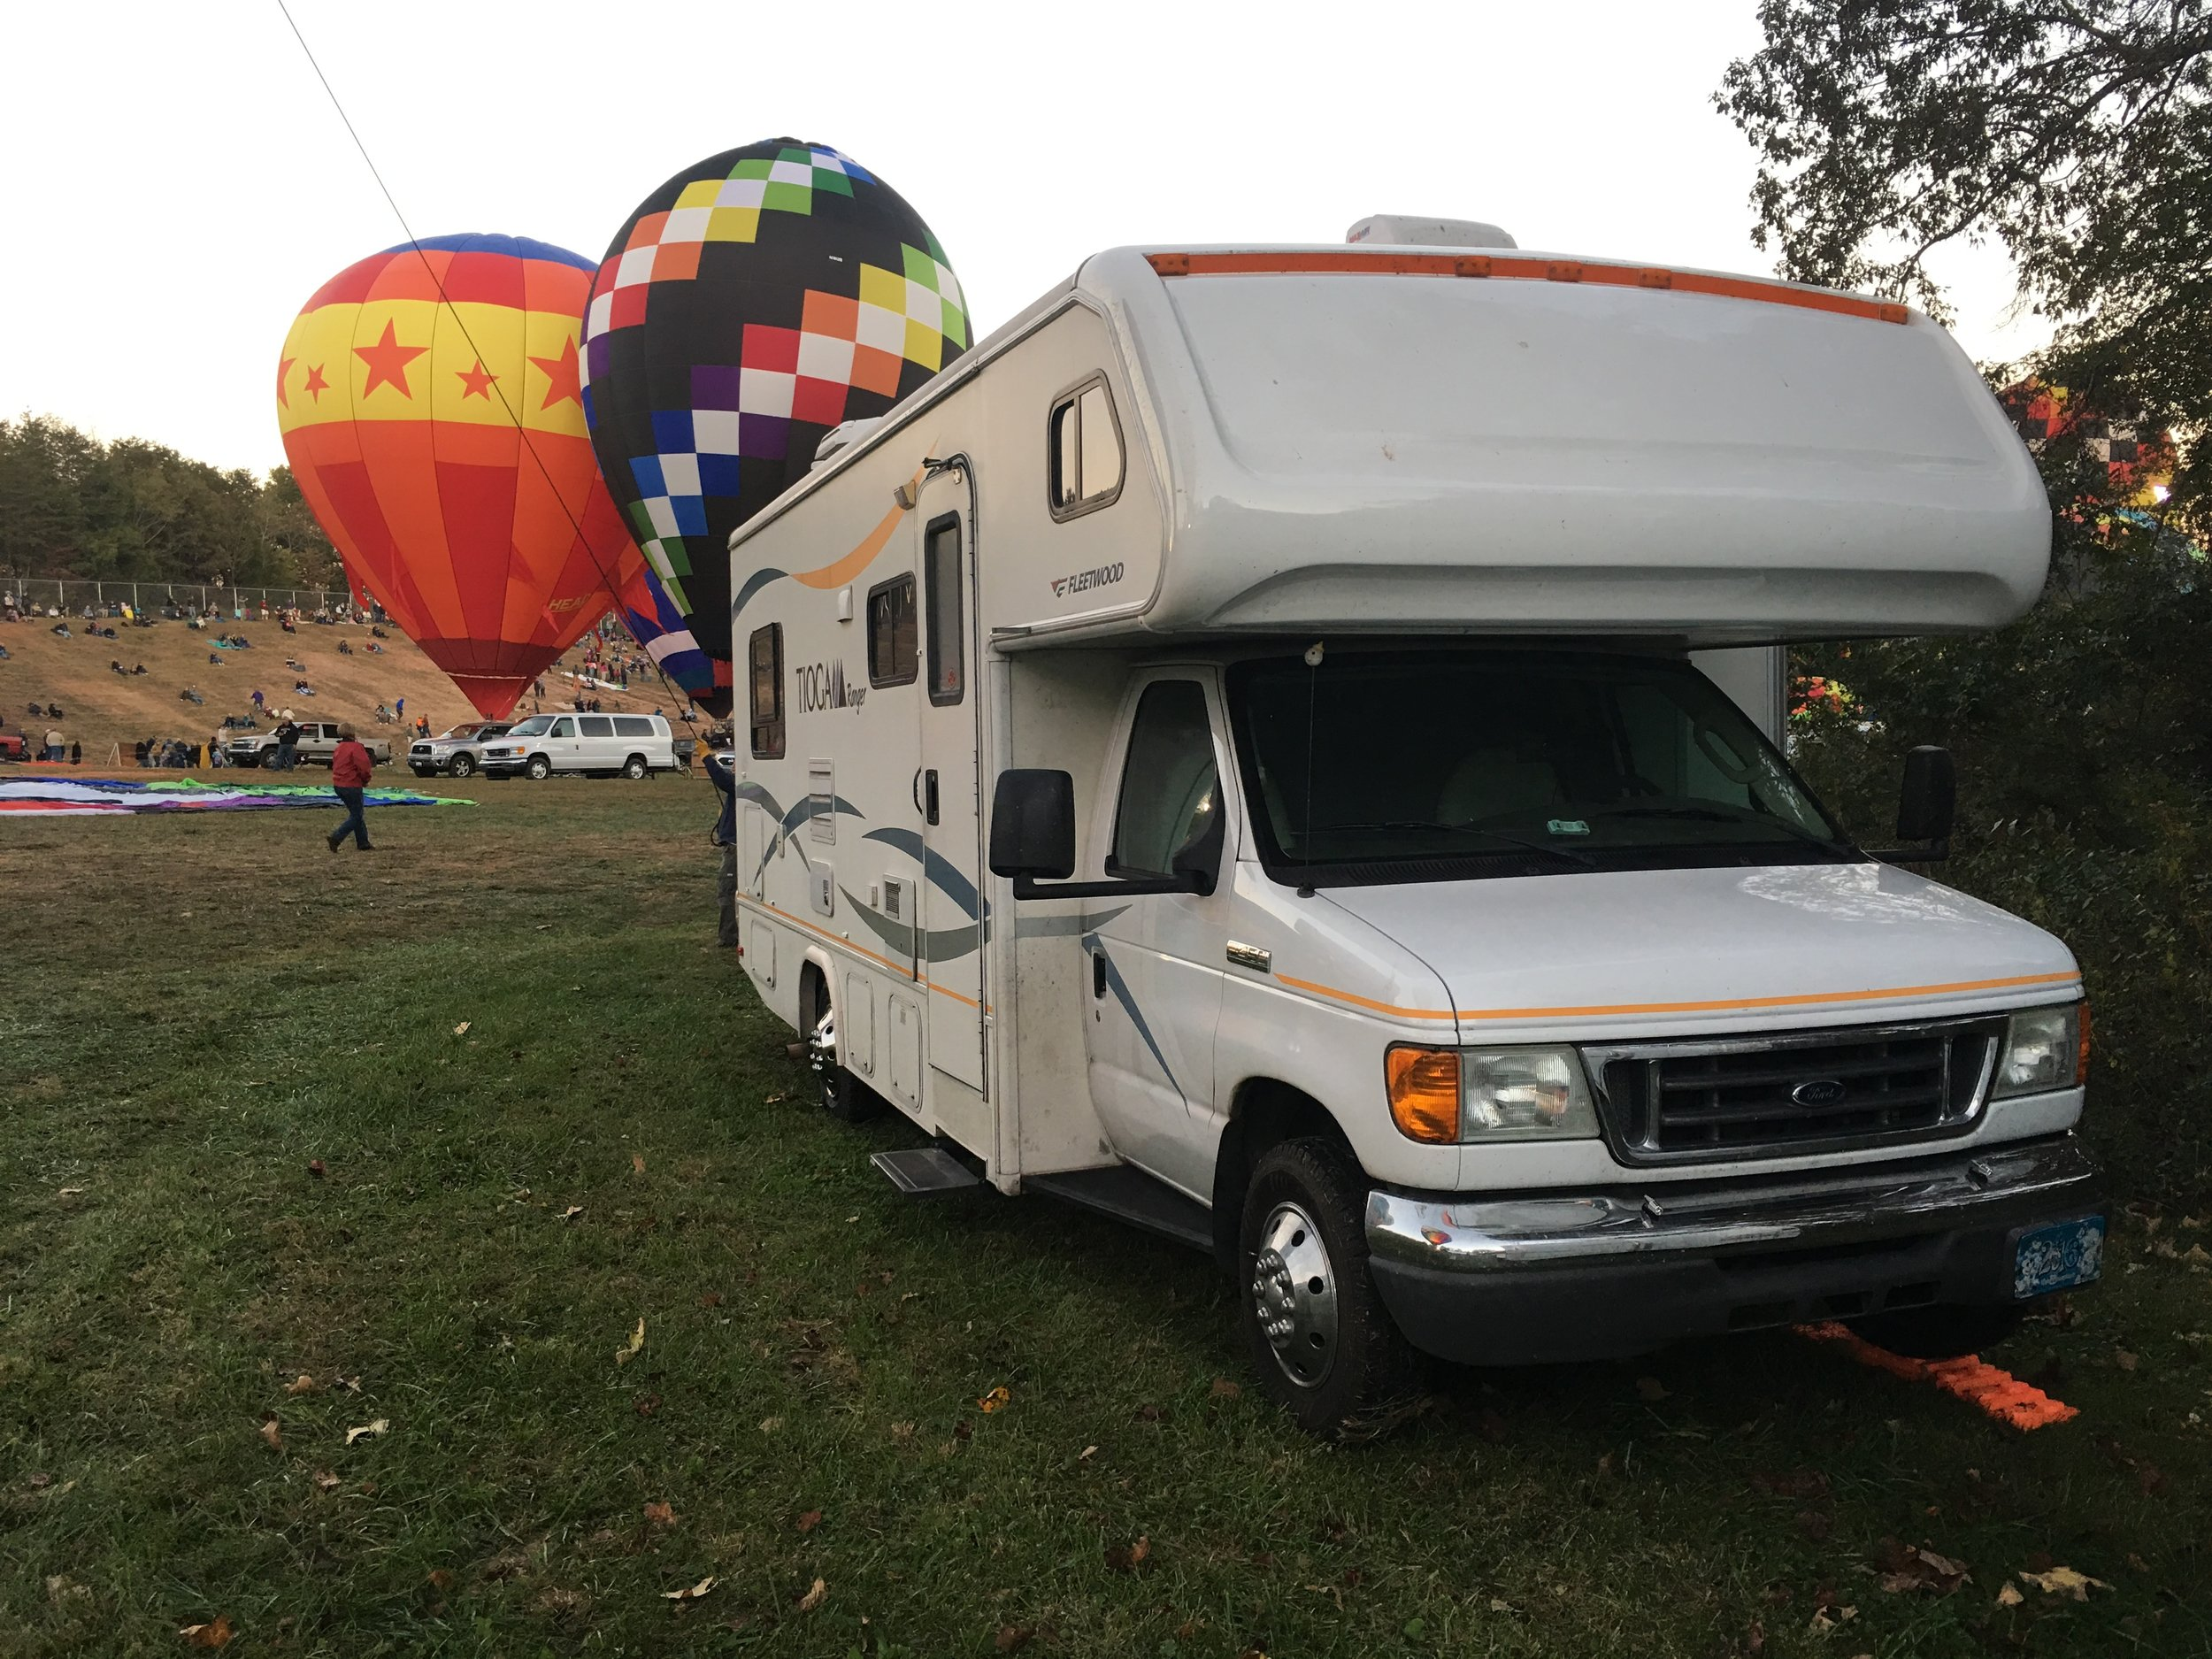 Imua camped at Carolina BalloonFest 2016